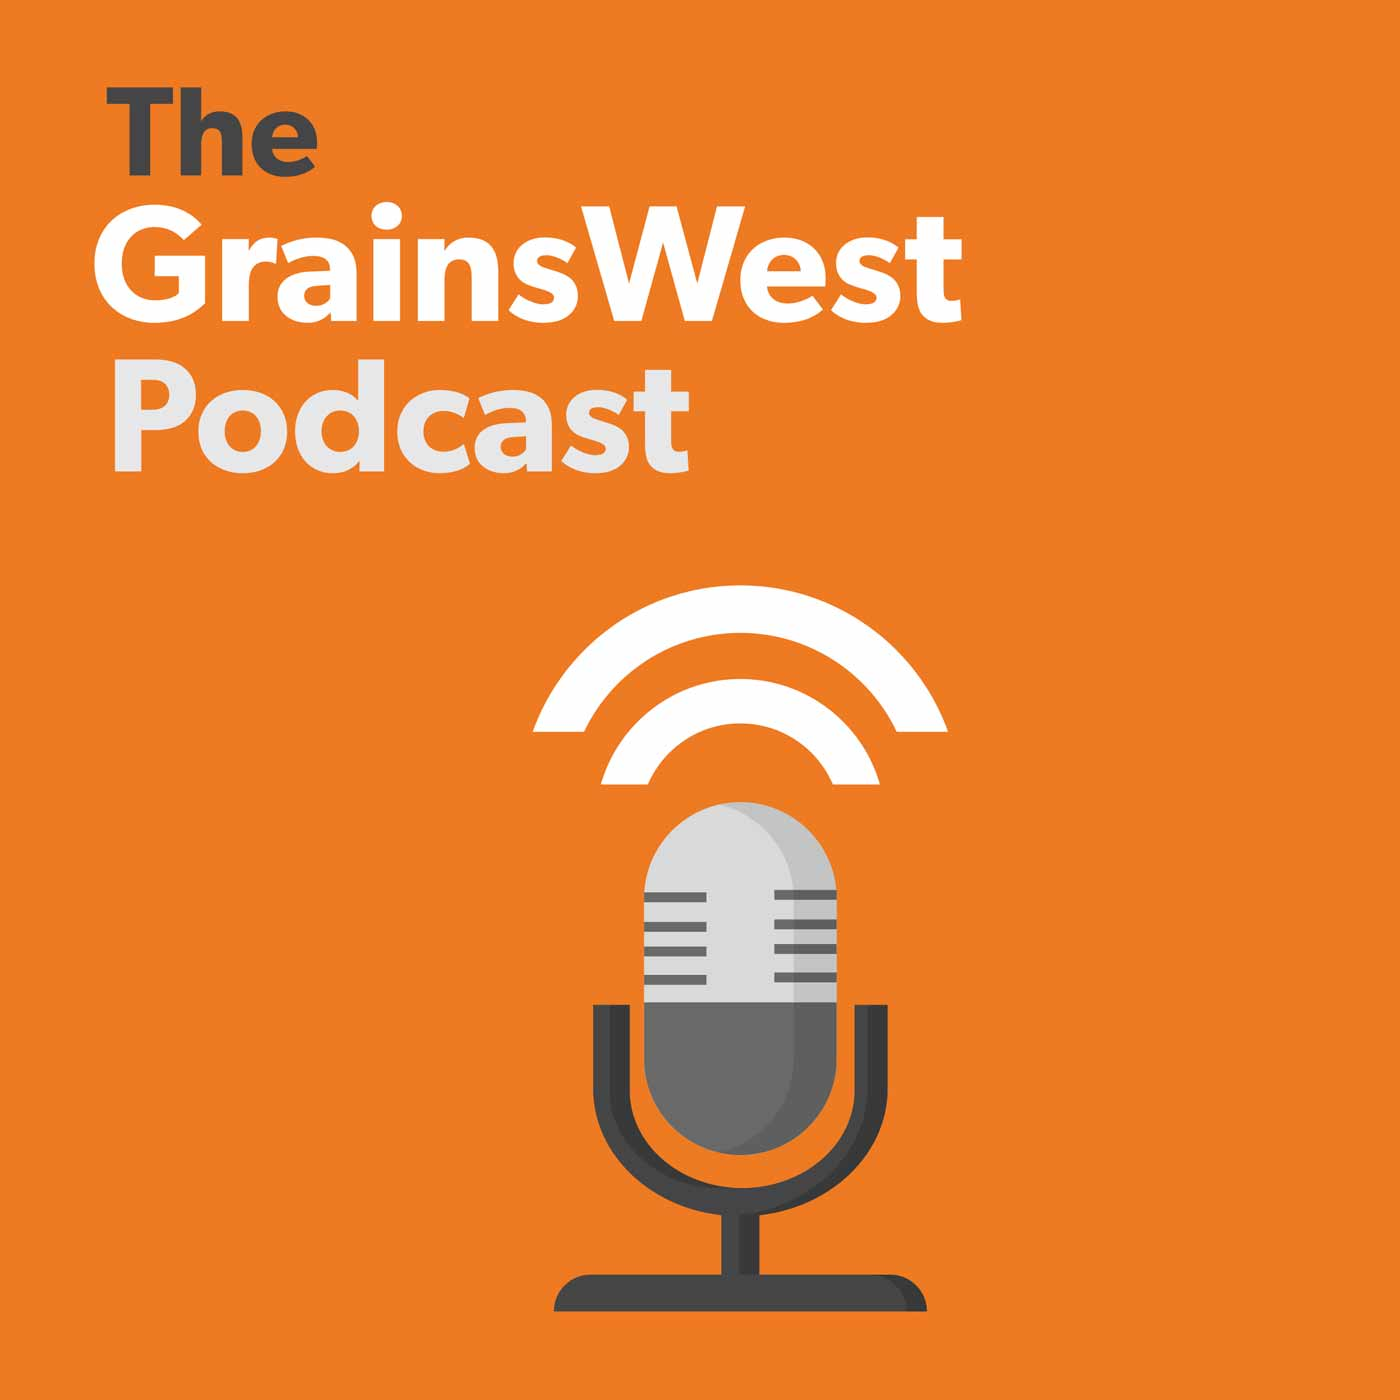 The GrainsWest Podcast